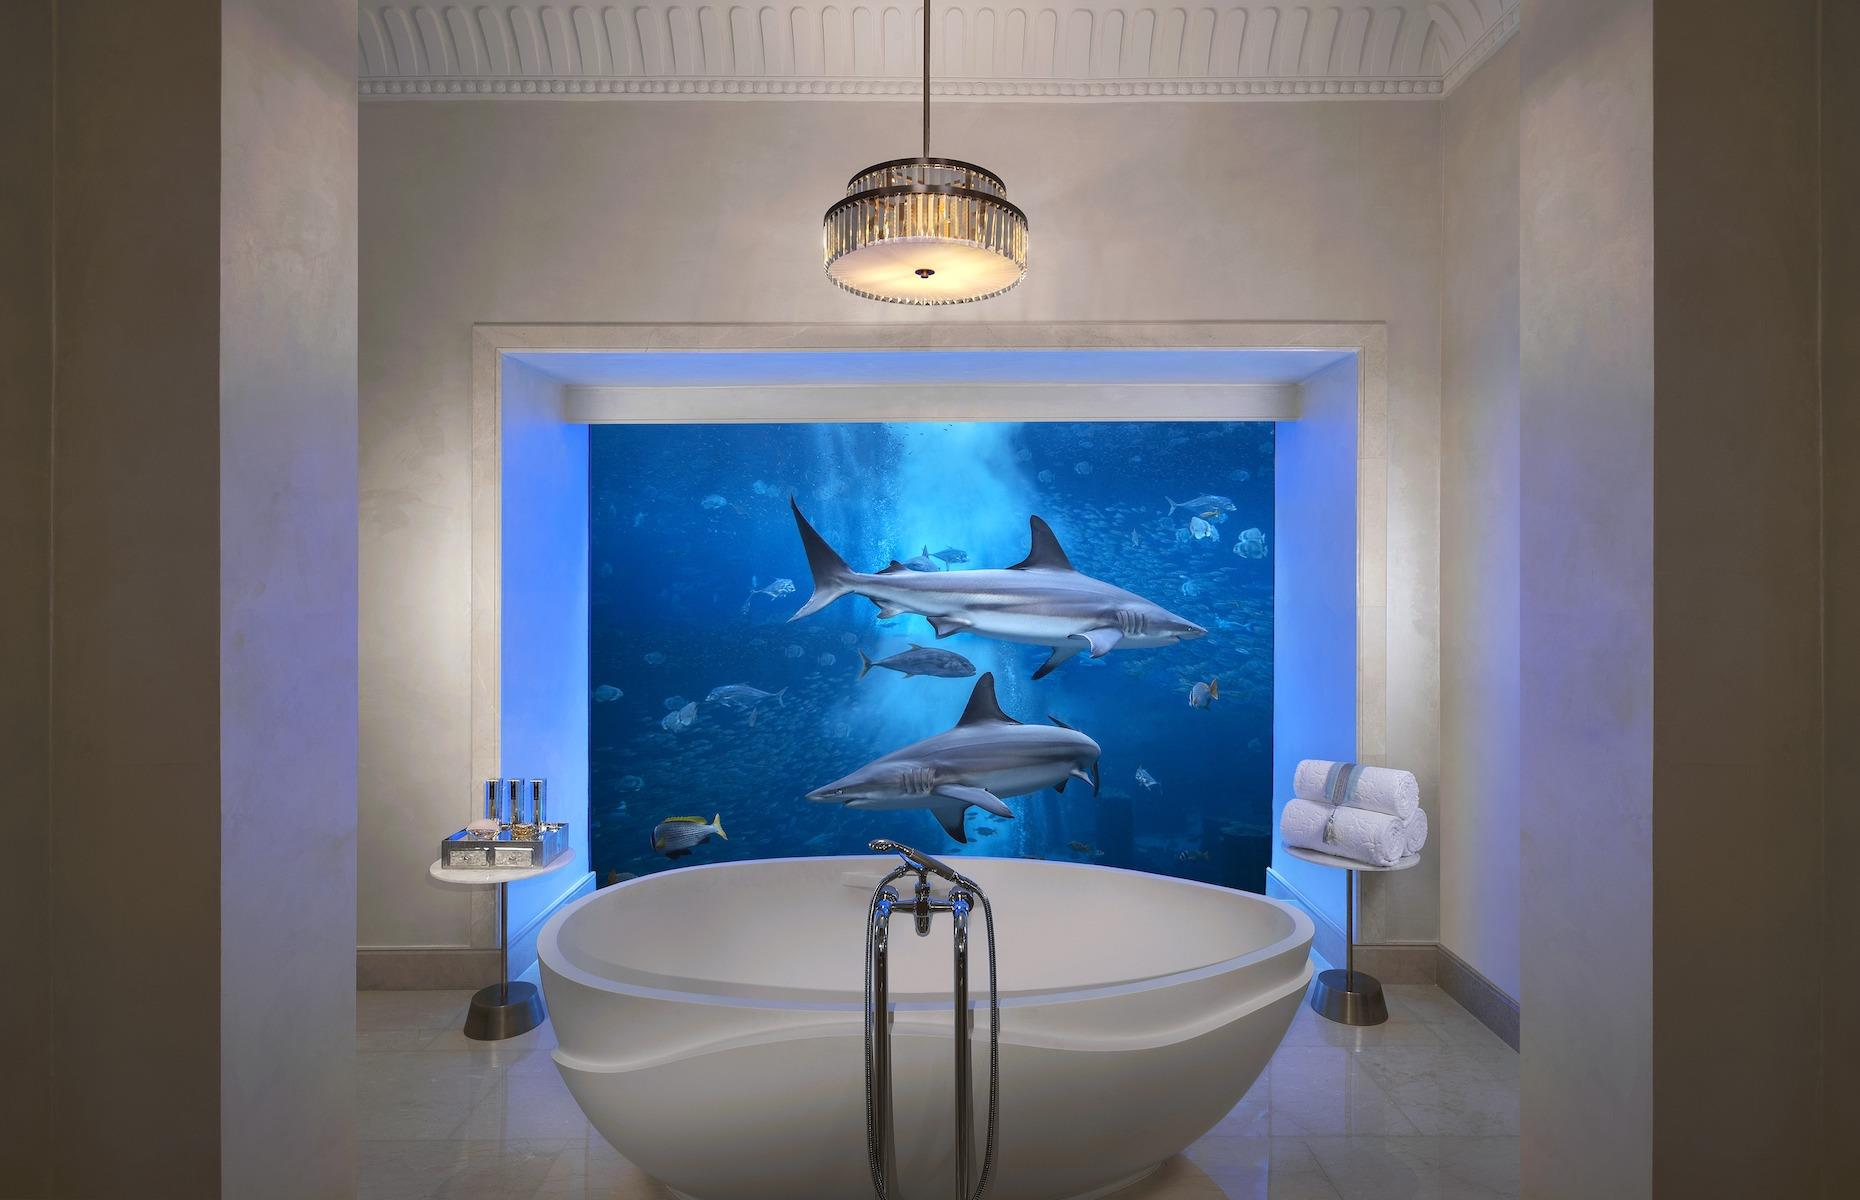 Slide 4 of 24: The twin underwater suites – which come with a private butler – have above-ground lounges where guests can gaze out at the lagoon's lapping water. Down below, the bedrooms and bathrooms have soaring floor-to-ceiling windows onto the private marine oasis, allowing guests to stare at the entrancing scene as they wallow in the bed or marble bath. For those wishing to get even closer to their colorful neighbors, the suite includes entry into the aquarium which can also arrange tank dives (although due to current COVID-19 restrictions, dives are not currently on offer).